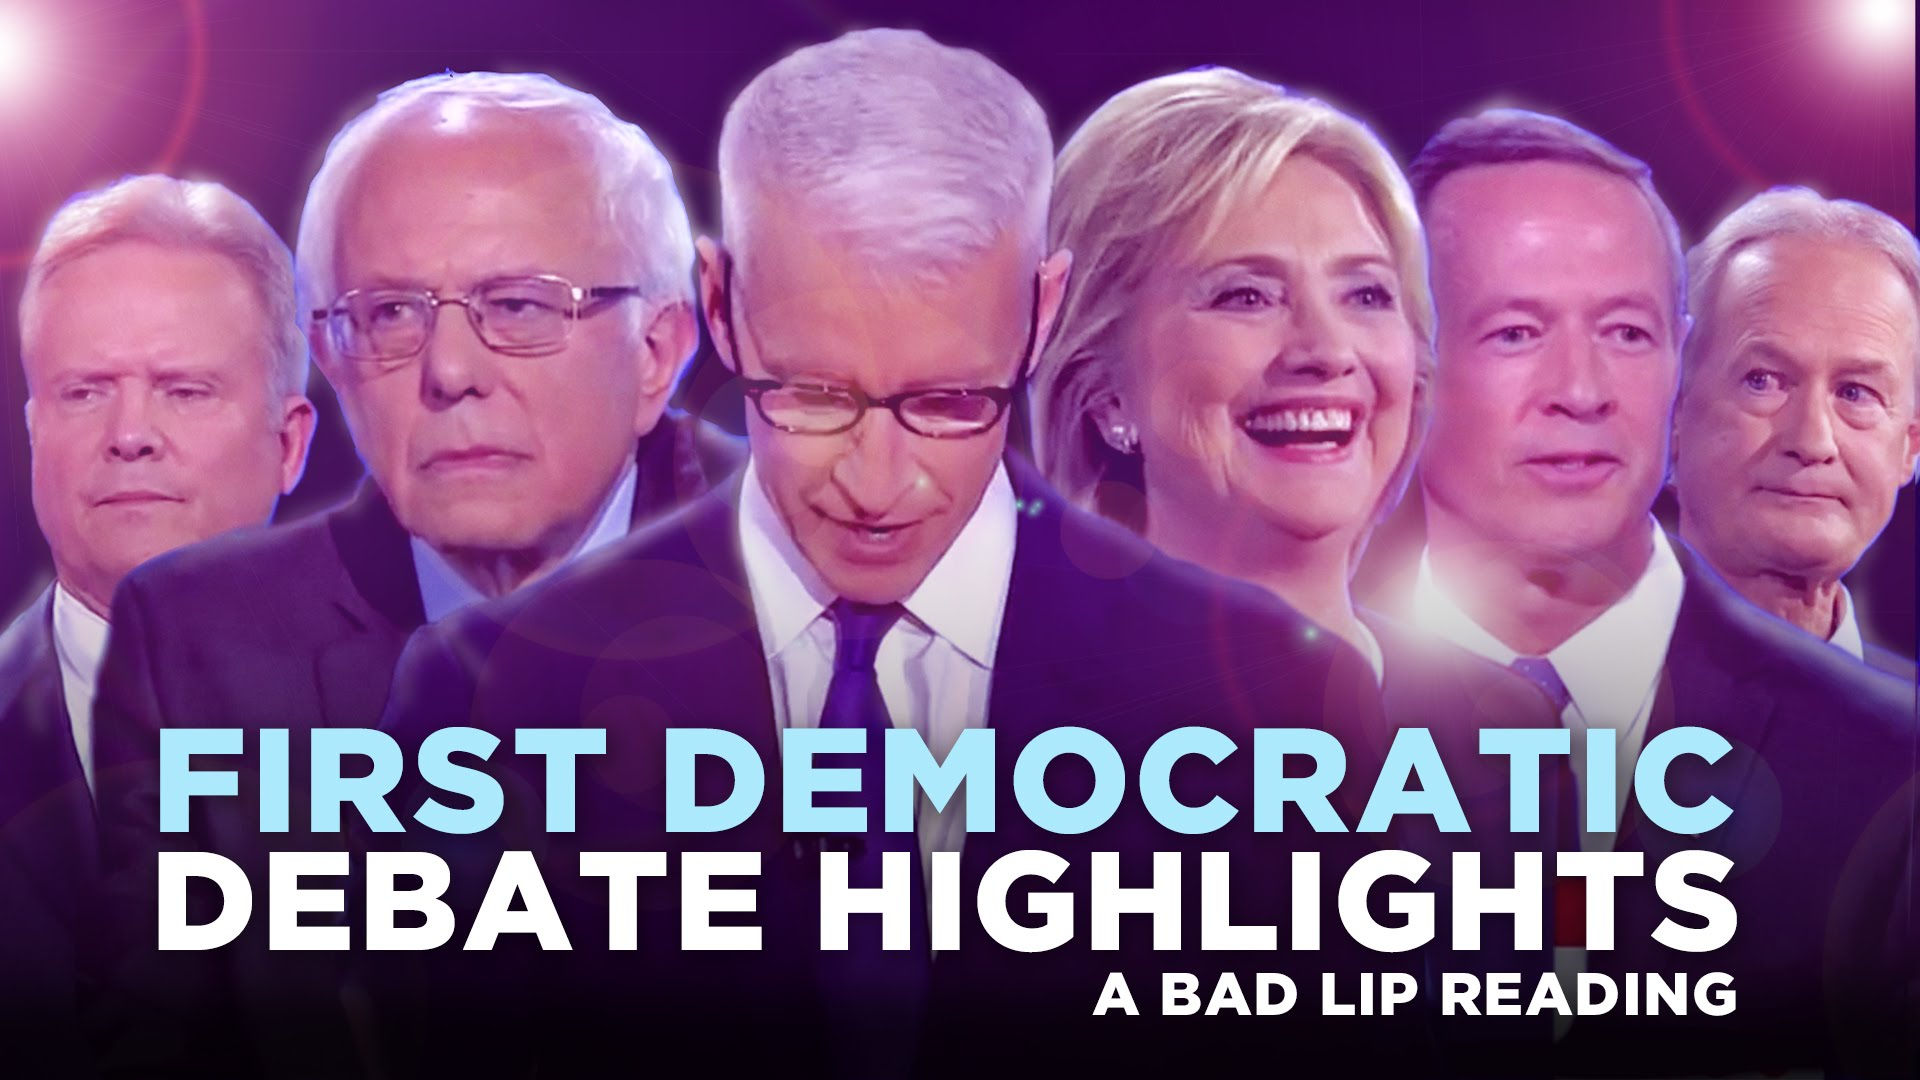 a bad lip reading of the first democratic debate